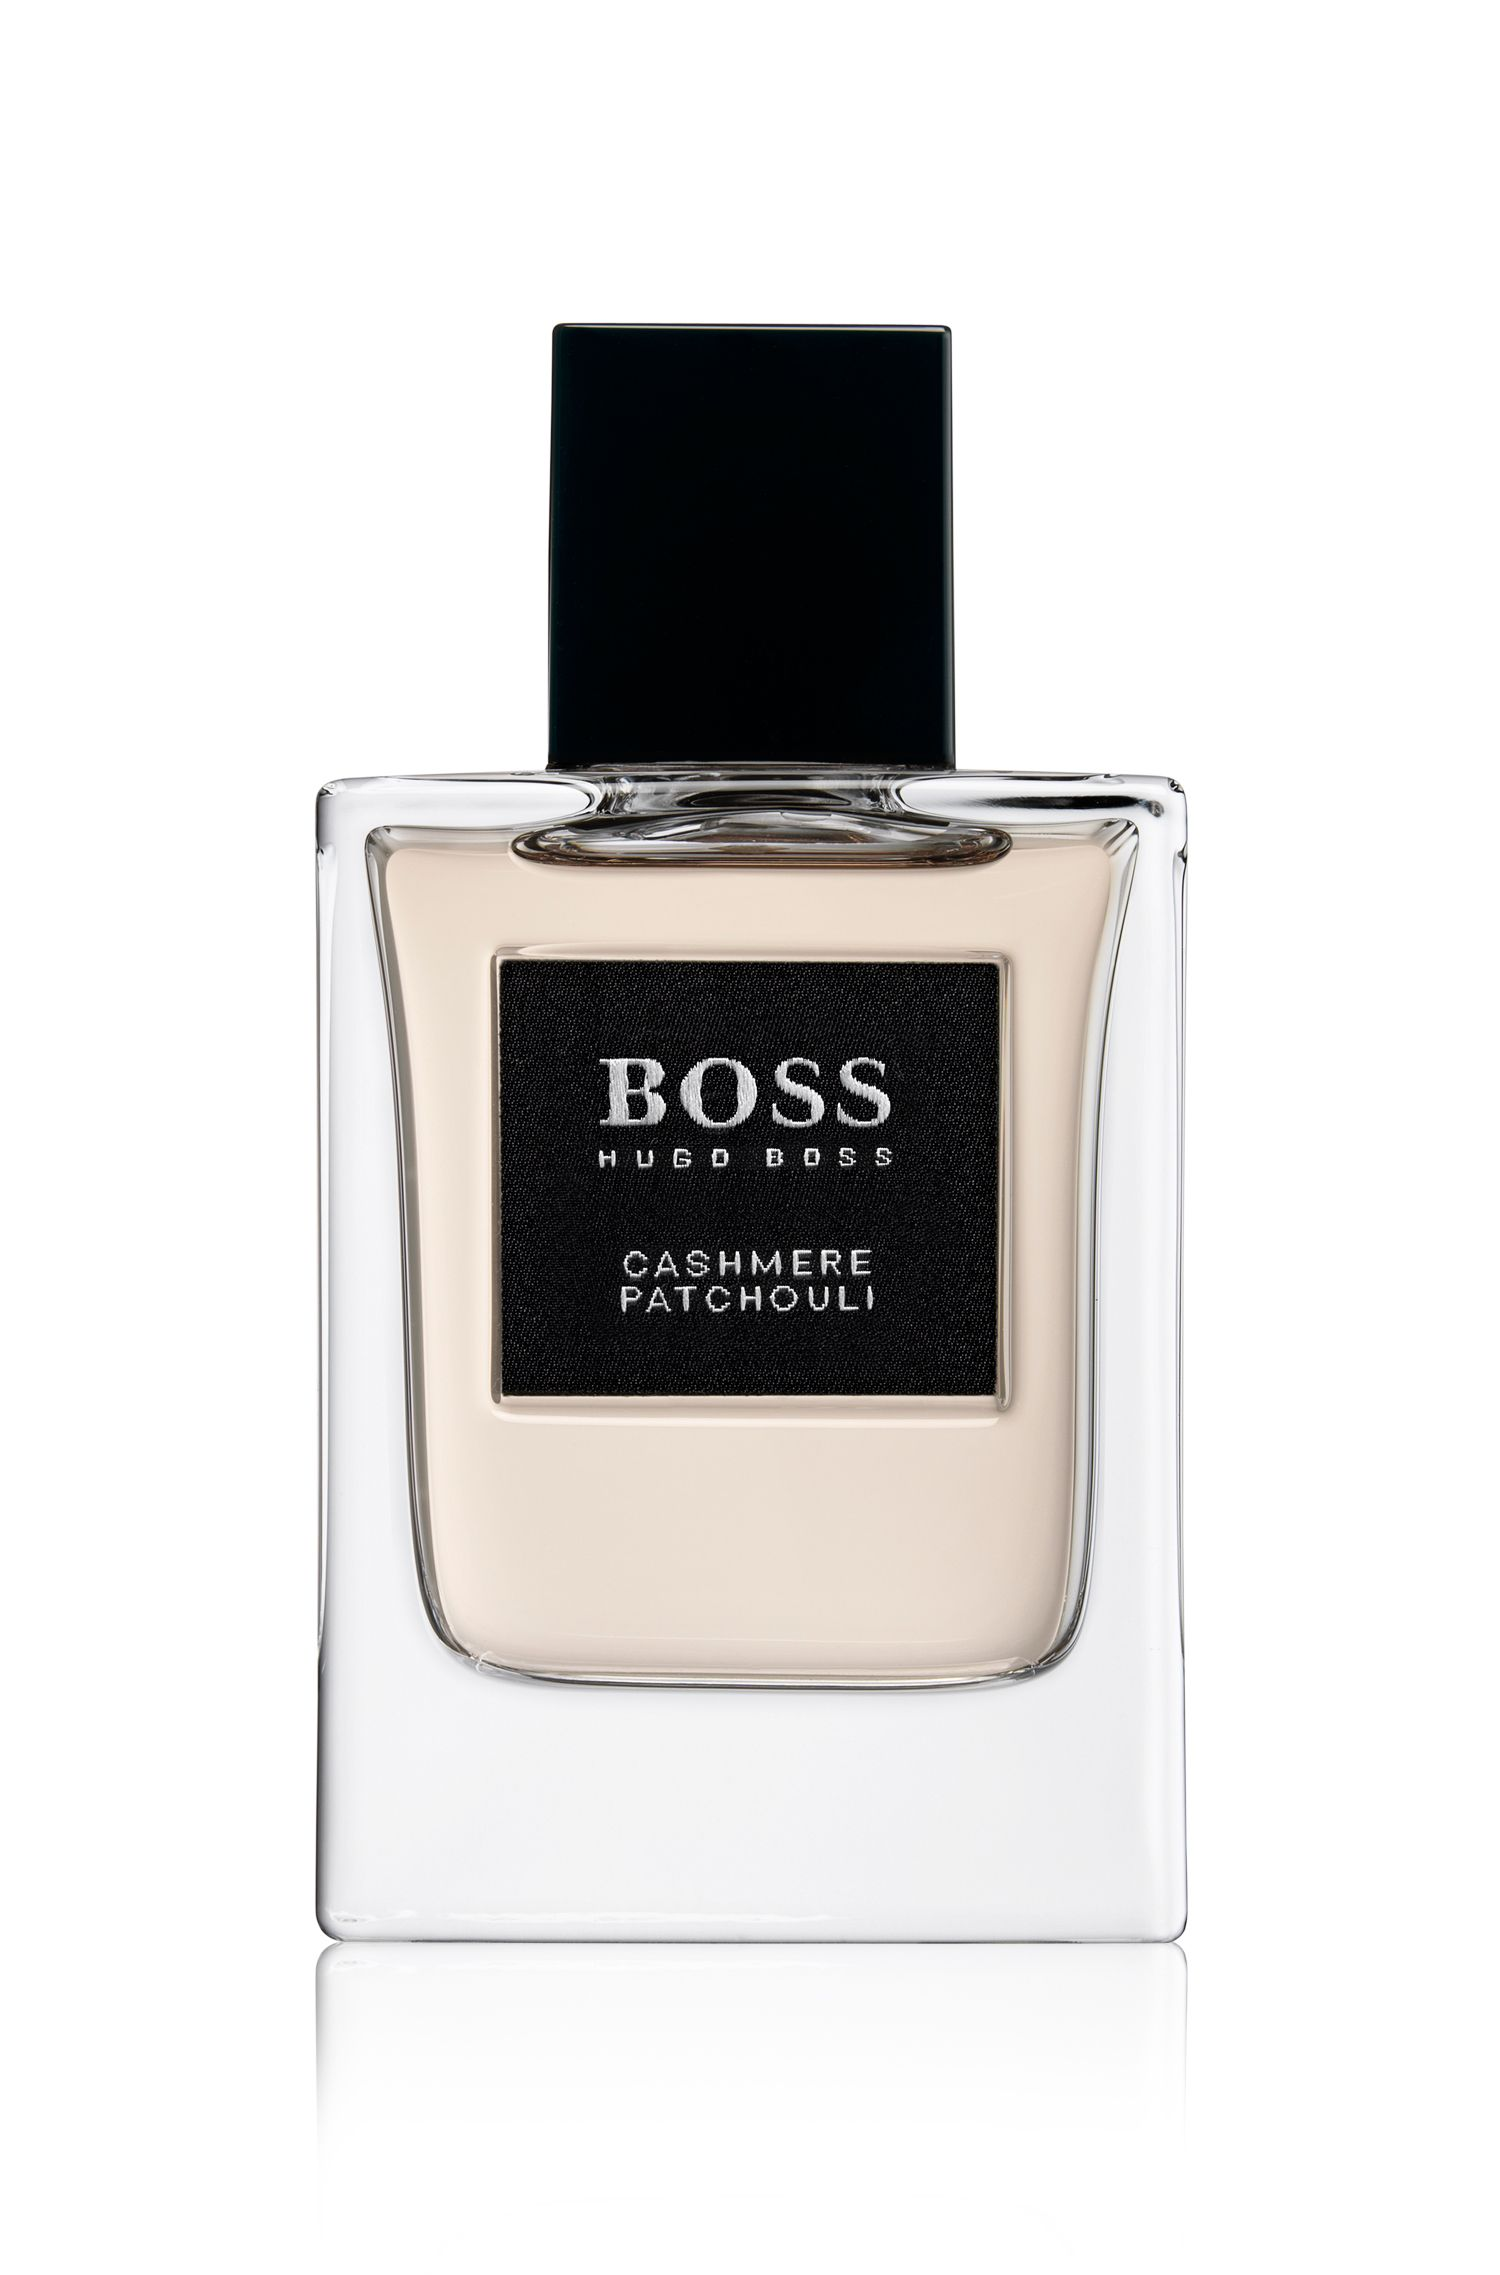 'BOSS The Collection' | 1.7 fl. oz. (50 mL) Cashmere & Patchouli Eau de Toilette